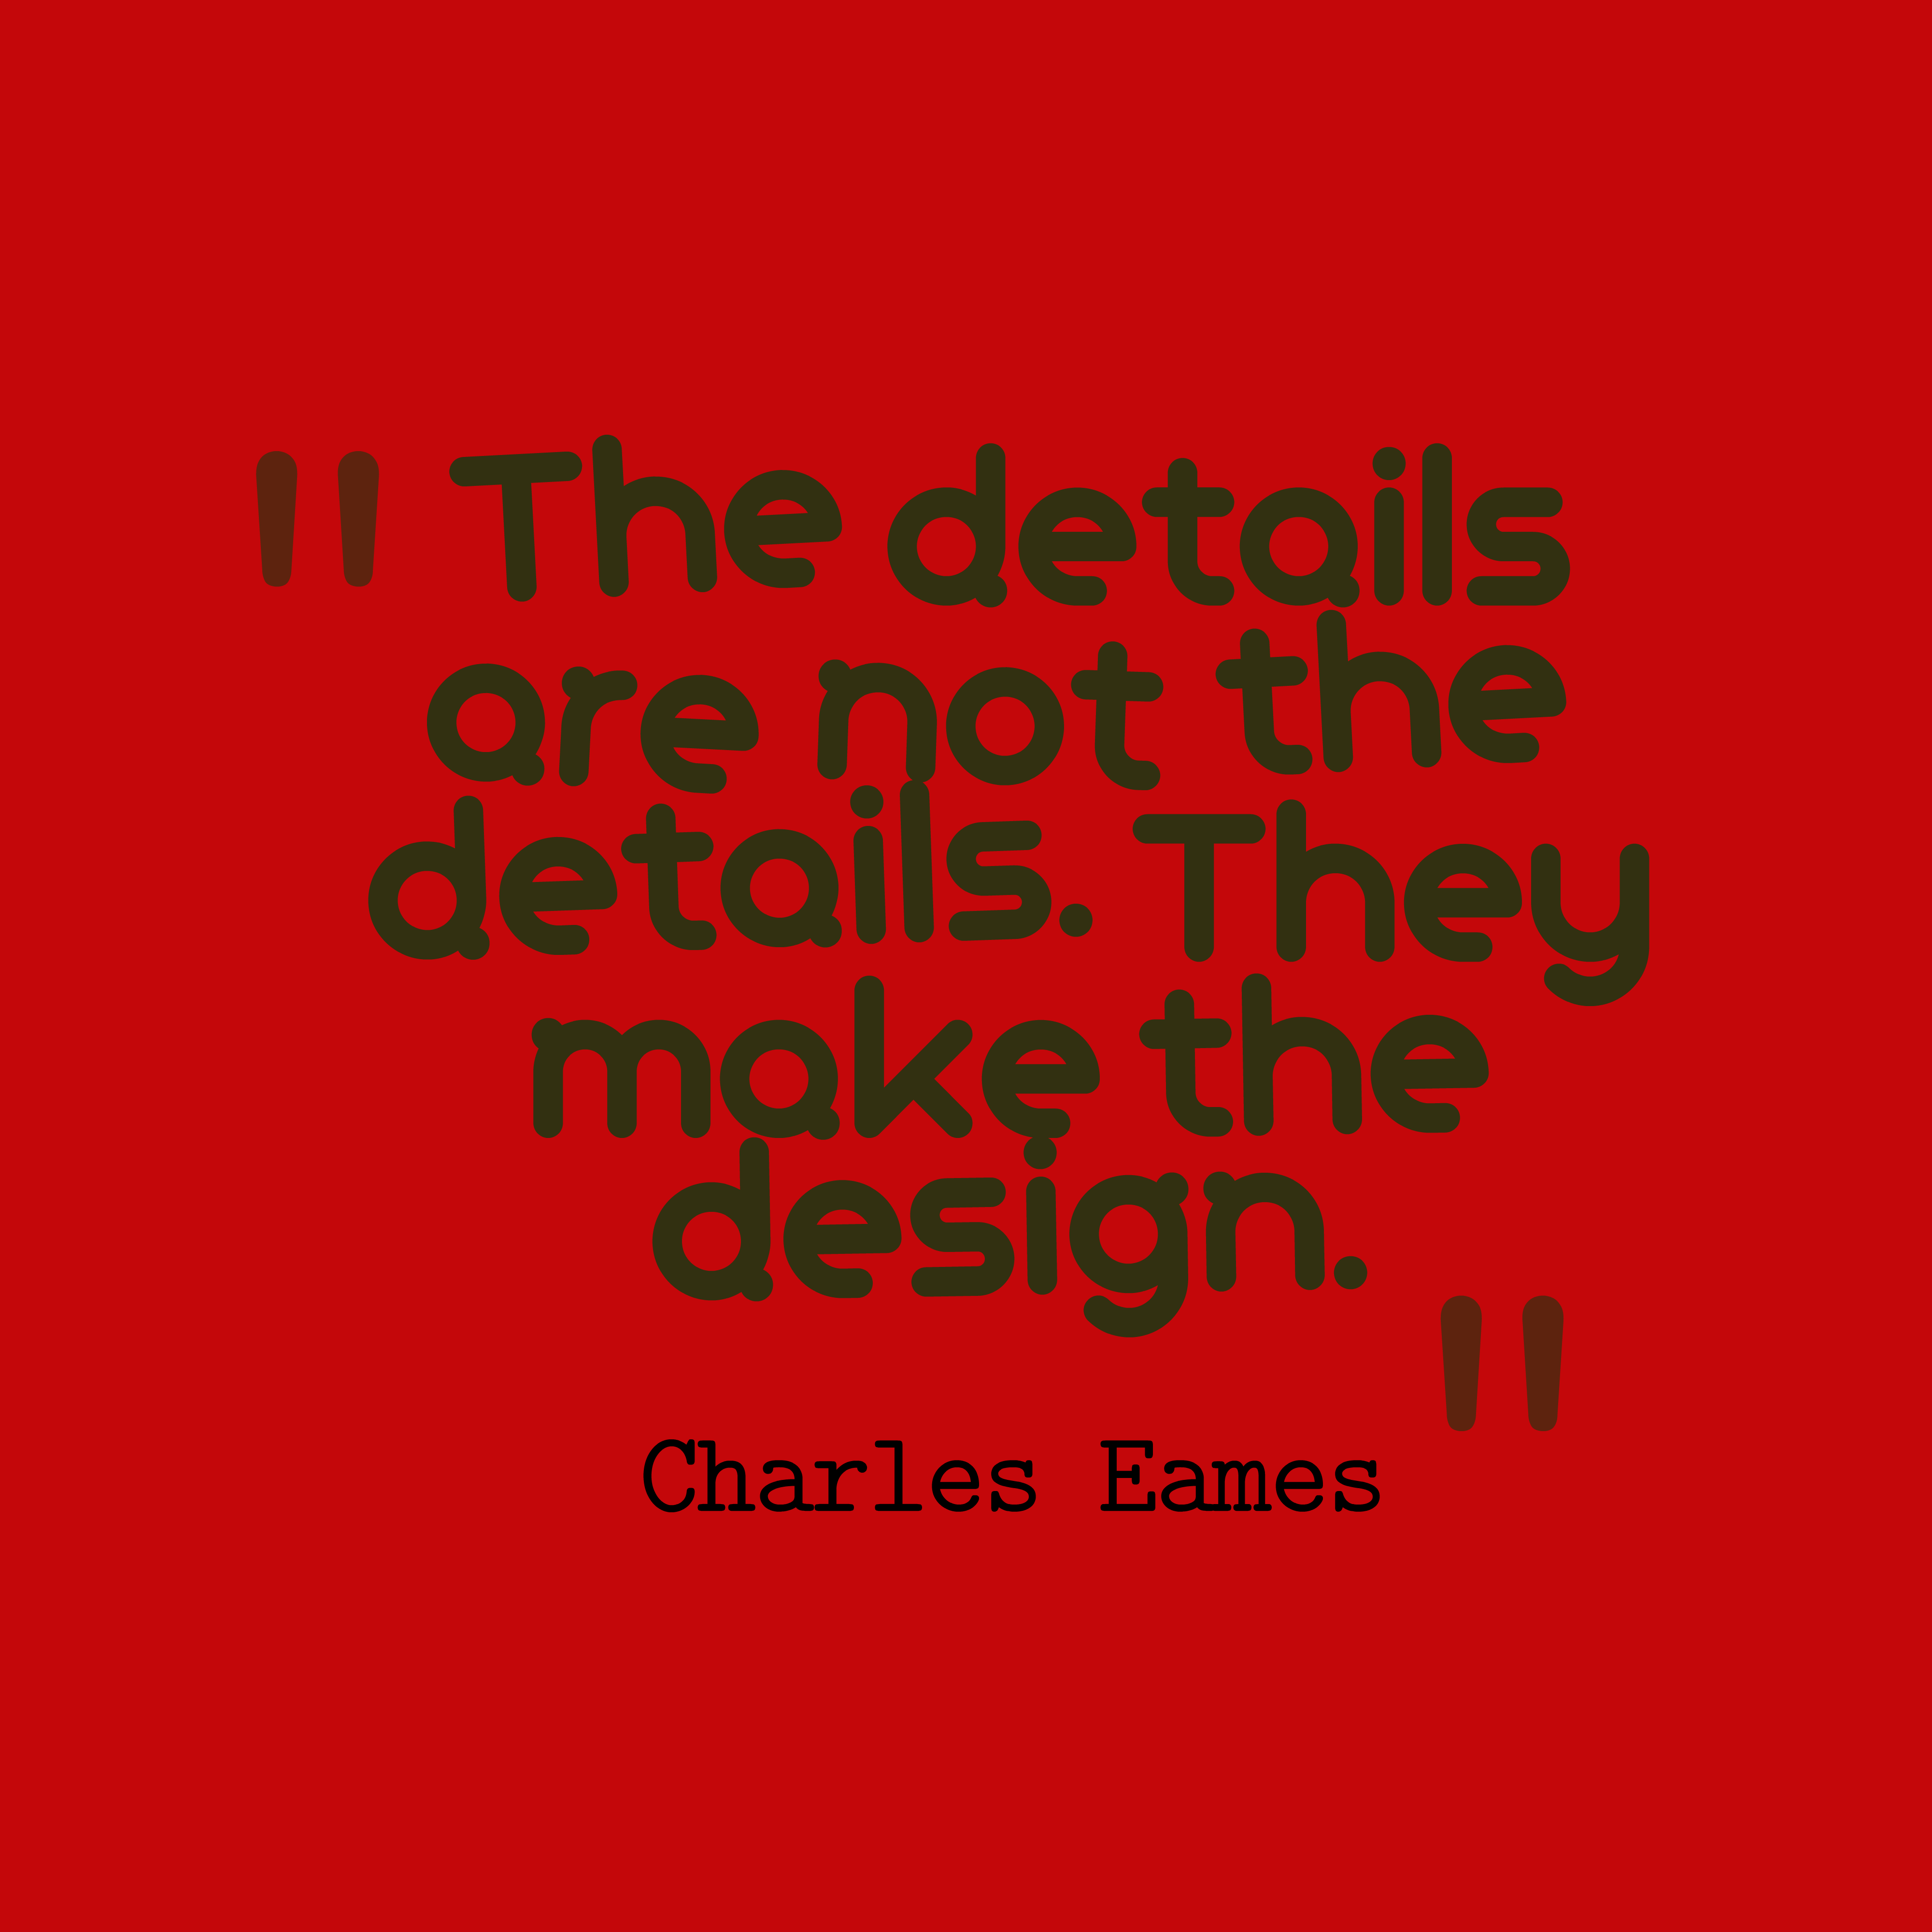 Picture » Charles Eames quote about design.